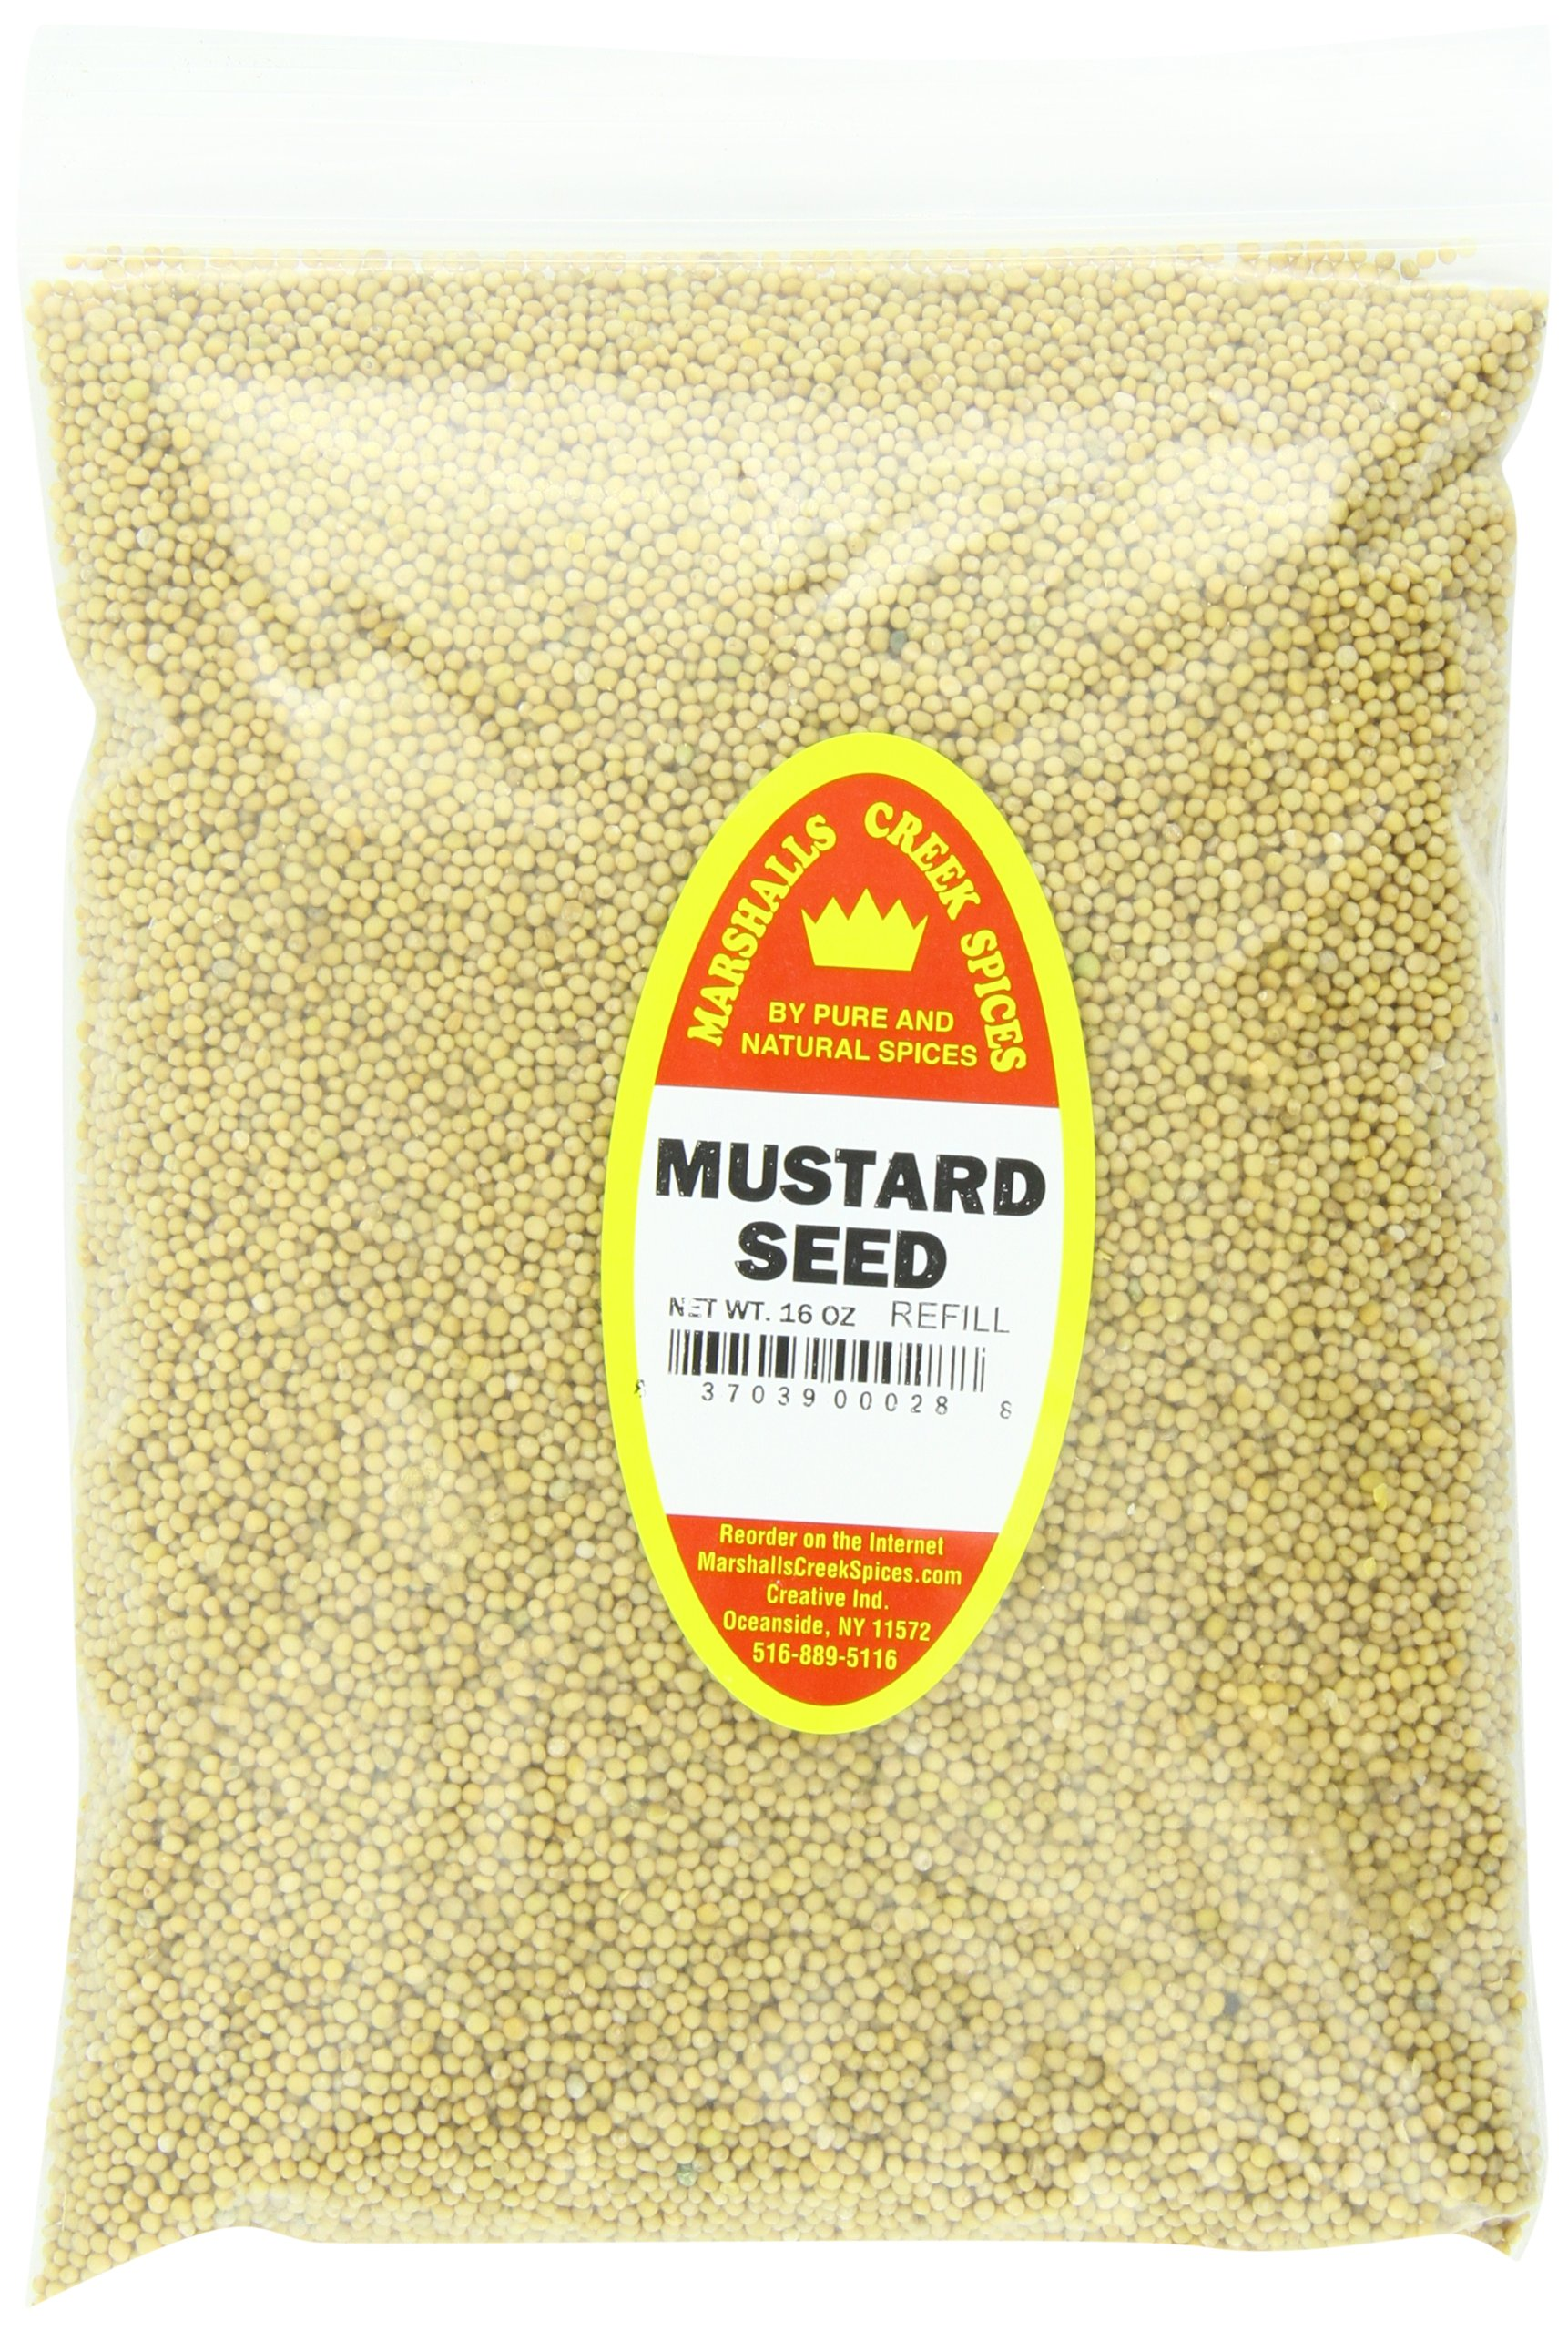 Marshalls Creek Spices Mustard Seed Refill, 16 Ounce by Marshall's Creek Spices (Image #1)